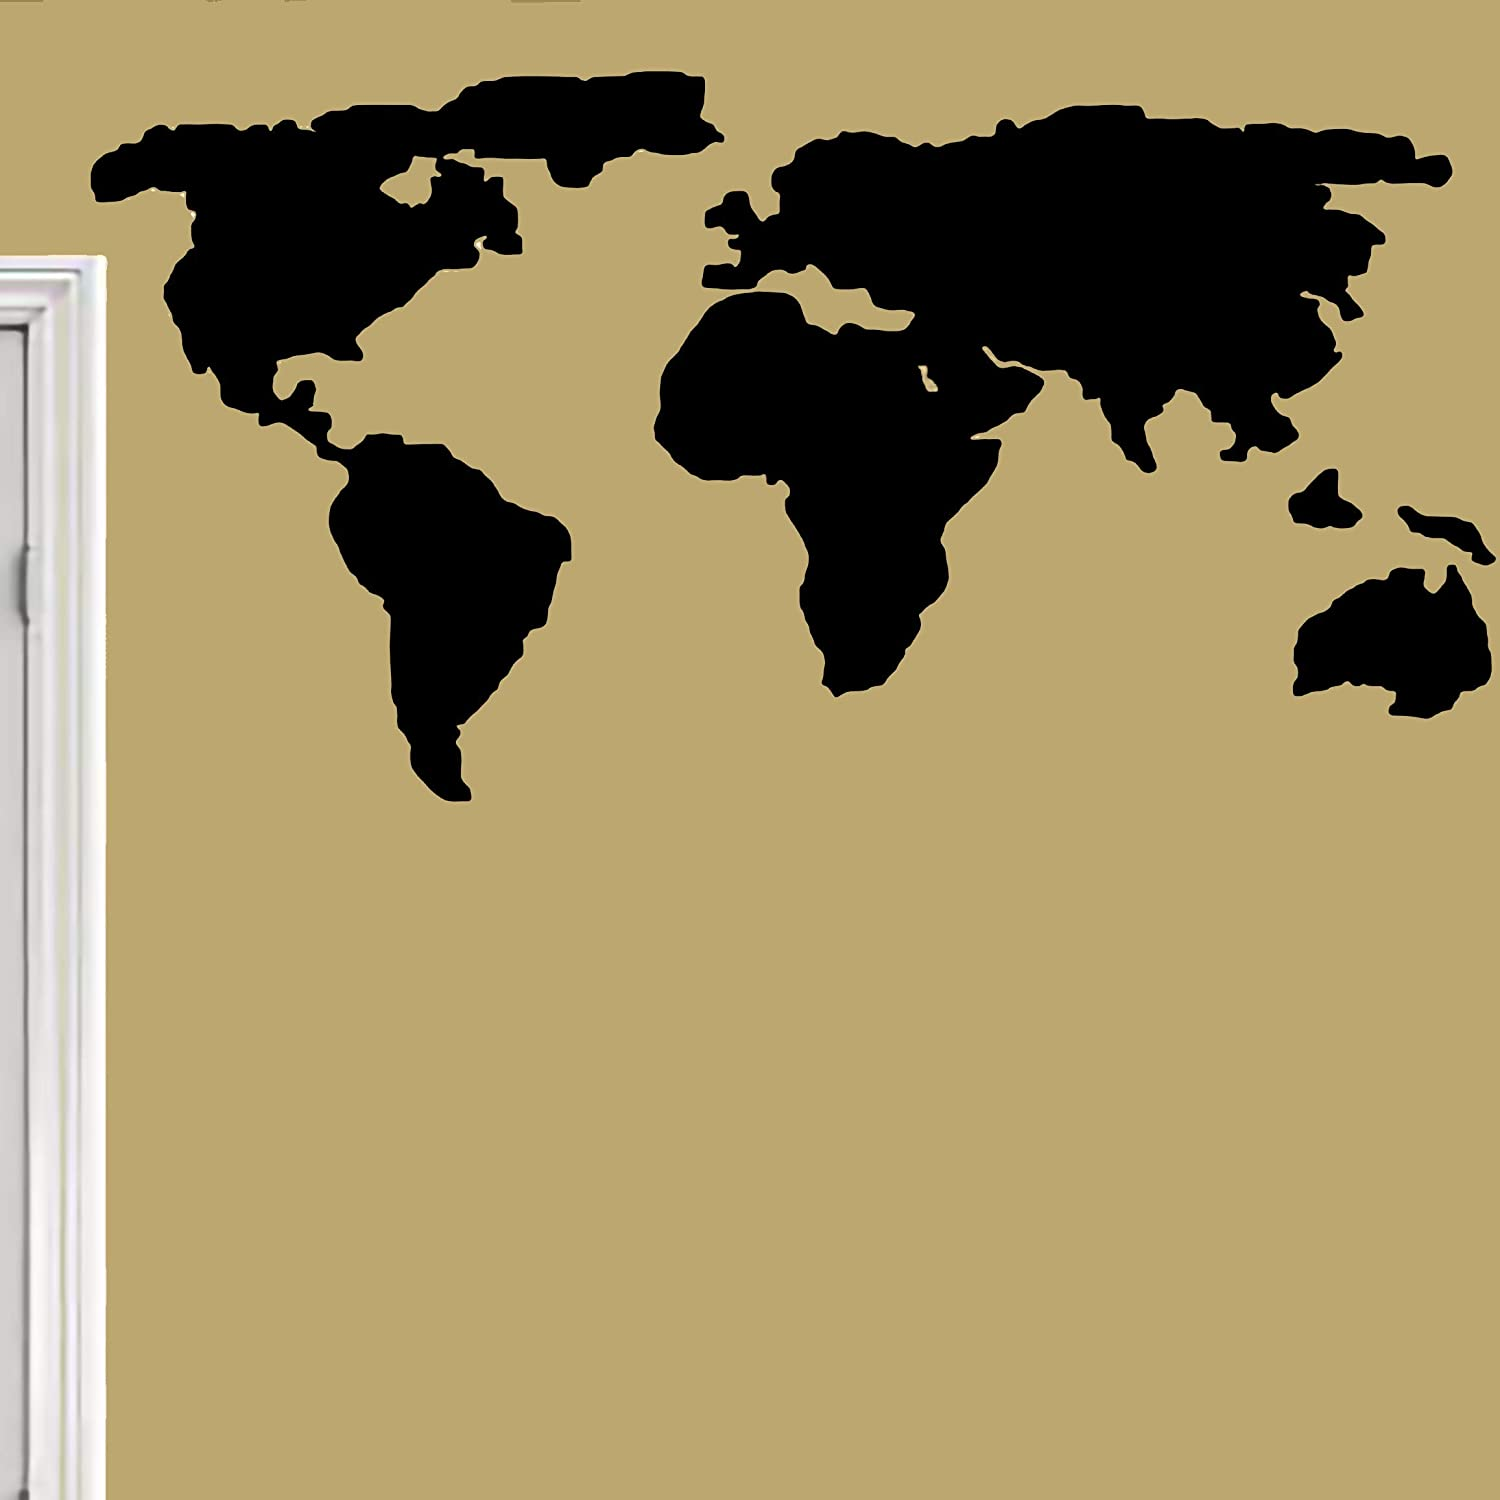 Amazon.com: Modern World Map Silhouette Wall Decal Home ...